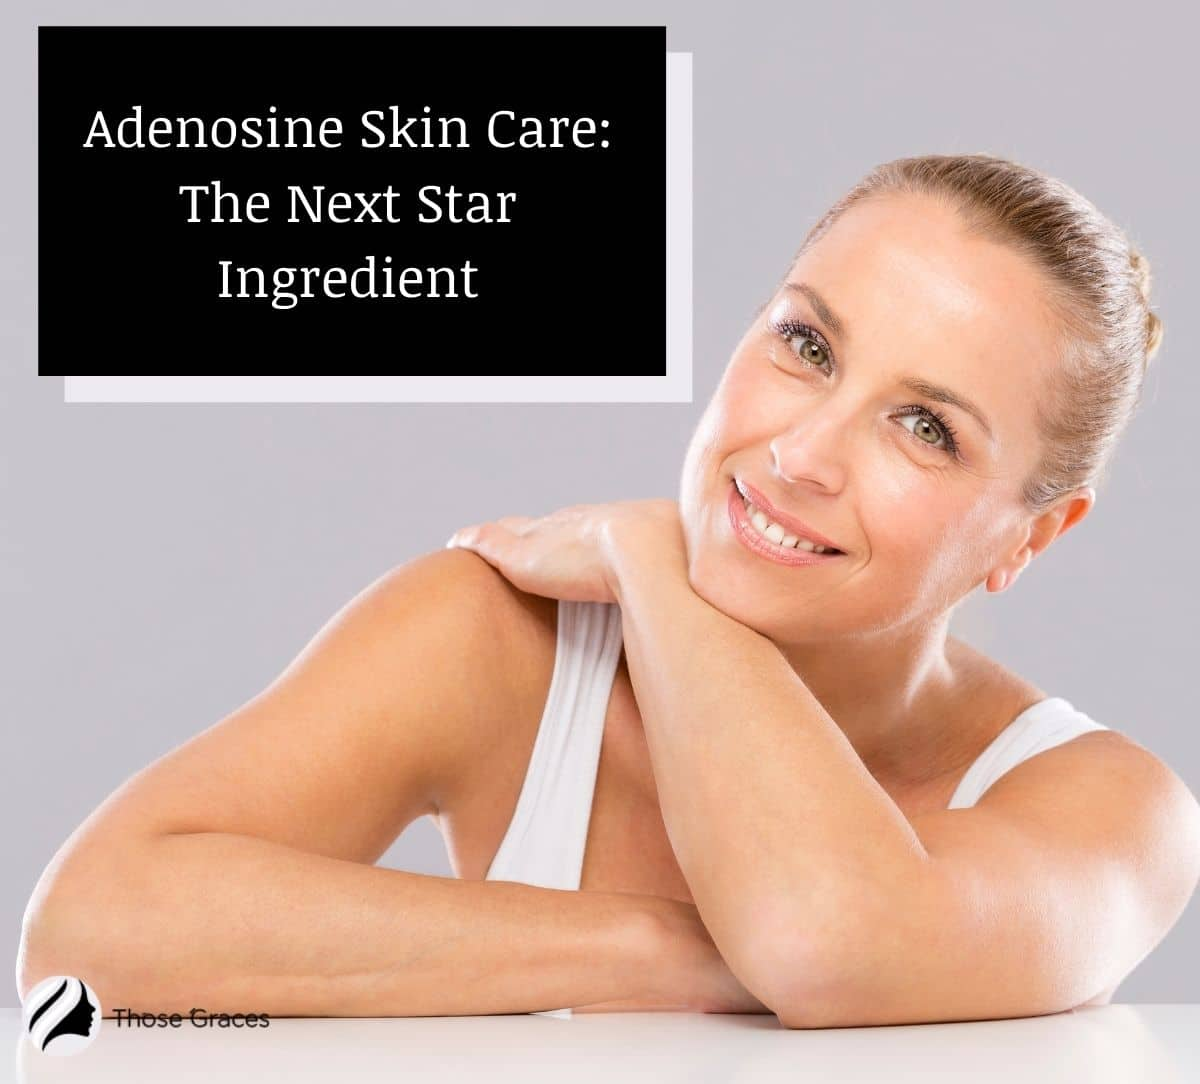 a middle-aged woman with a flawless skin achieved through adenosine skin care